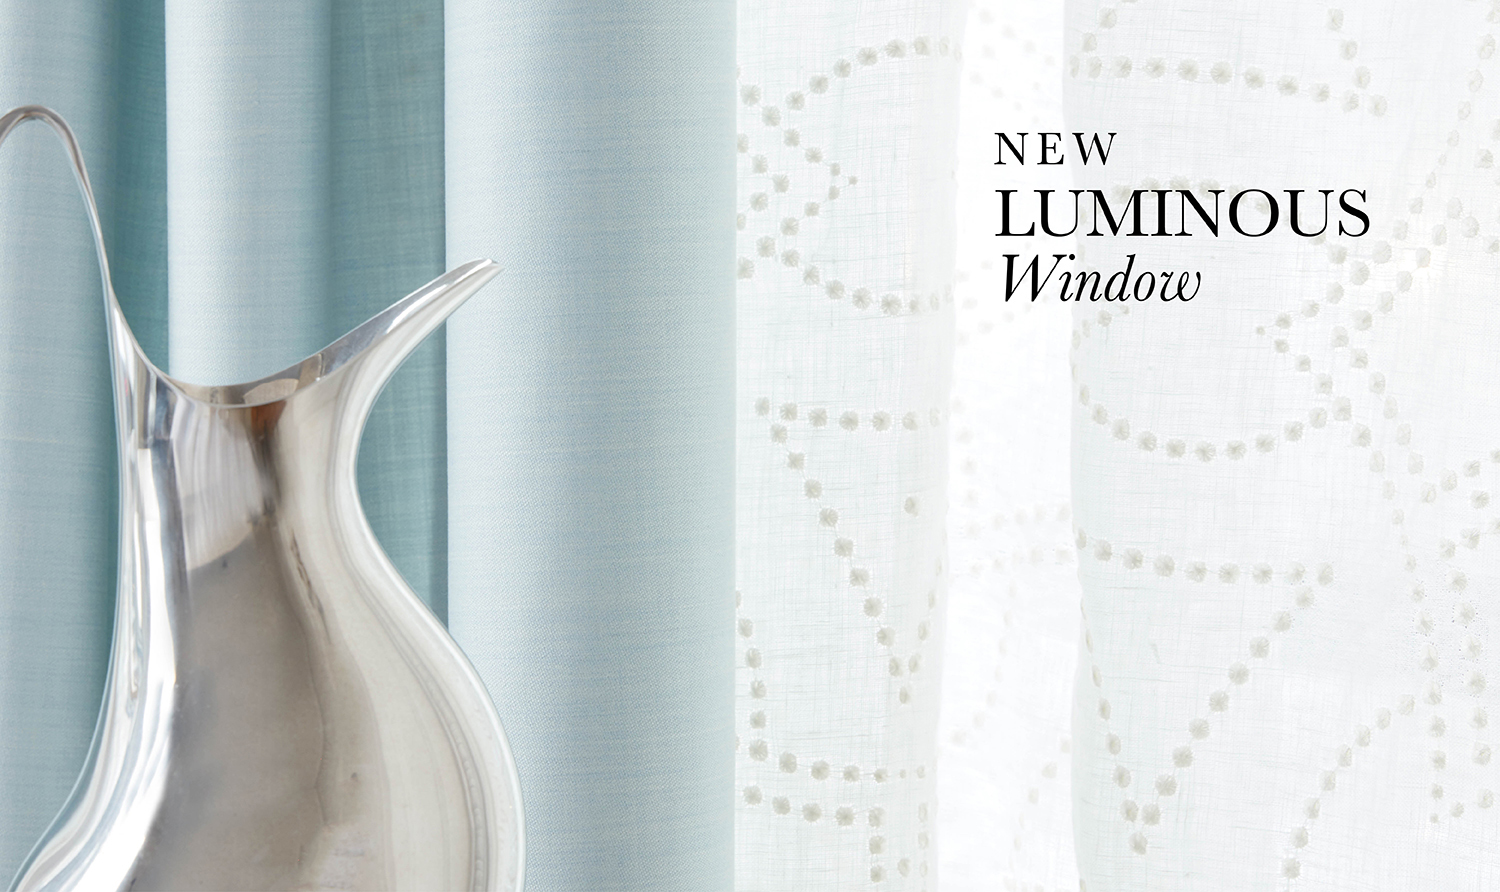 Luminous Windows solids Fabric Collection